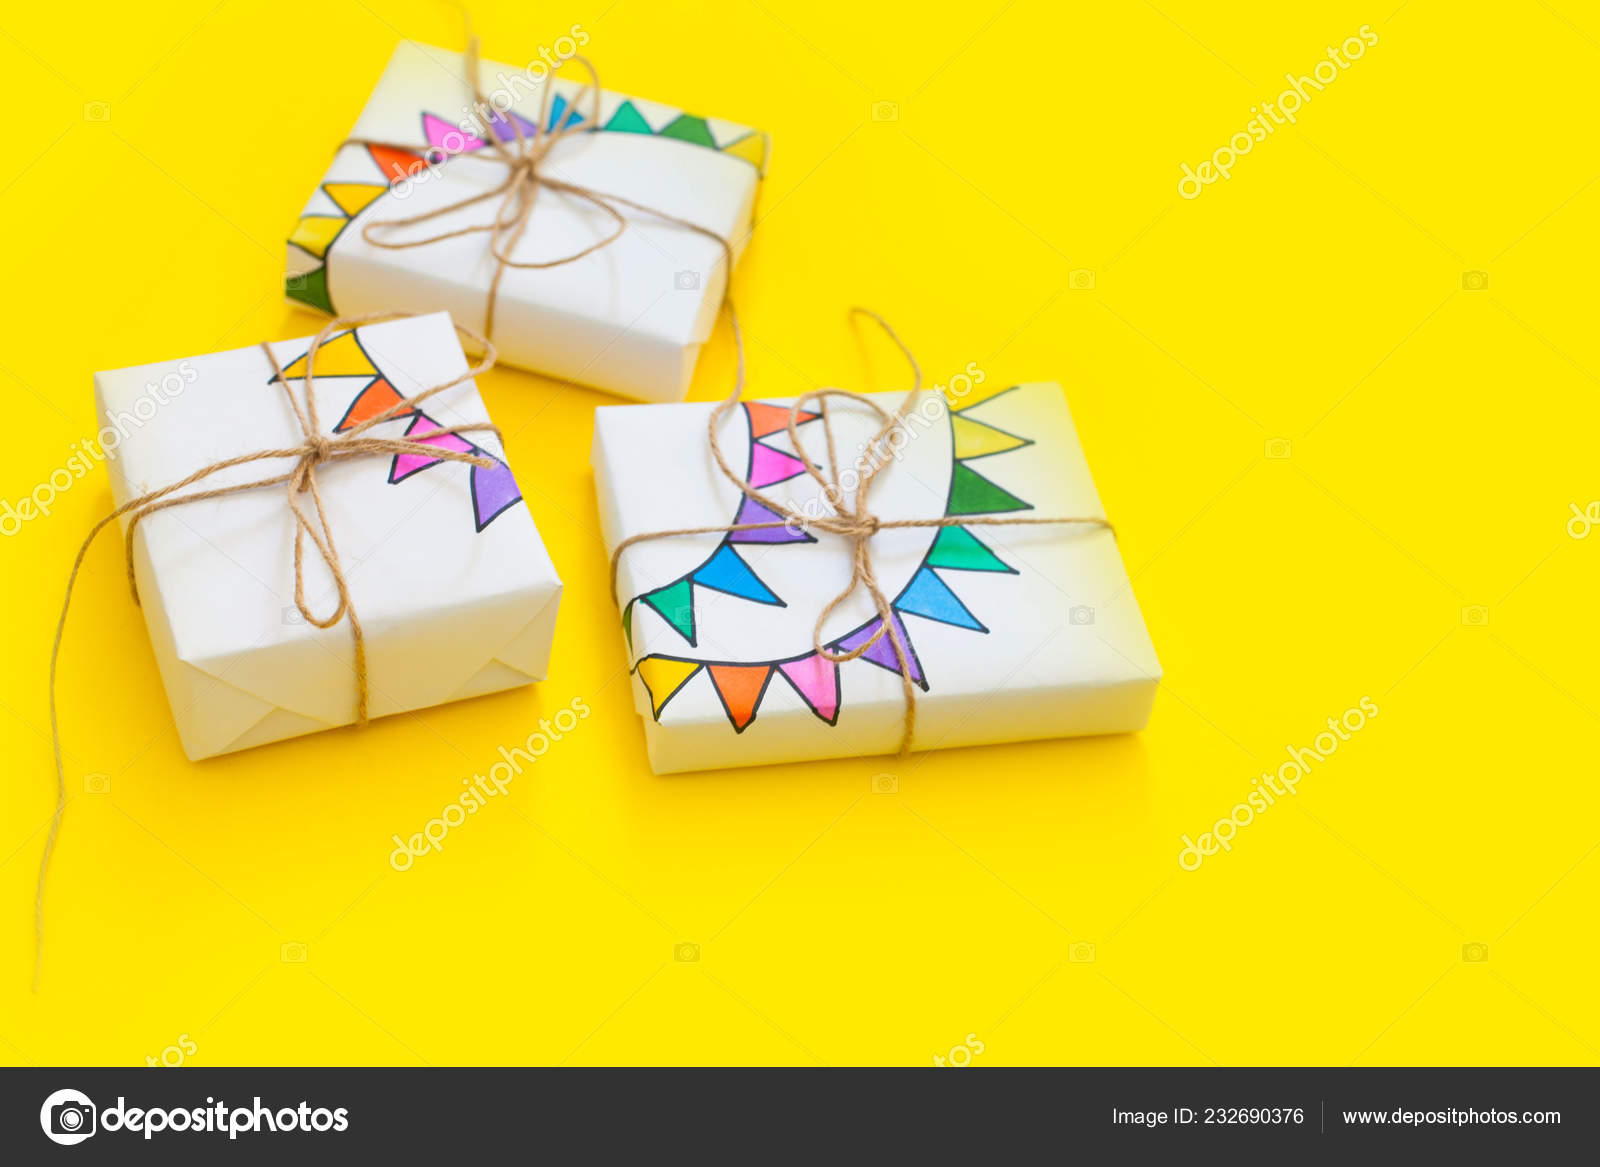 Colored Gift Boxes Jute Rope Yellow Background Gifts Party Birthday